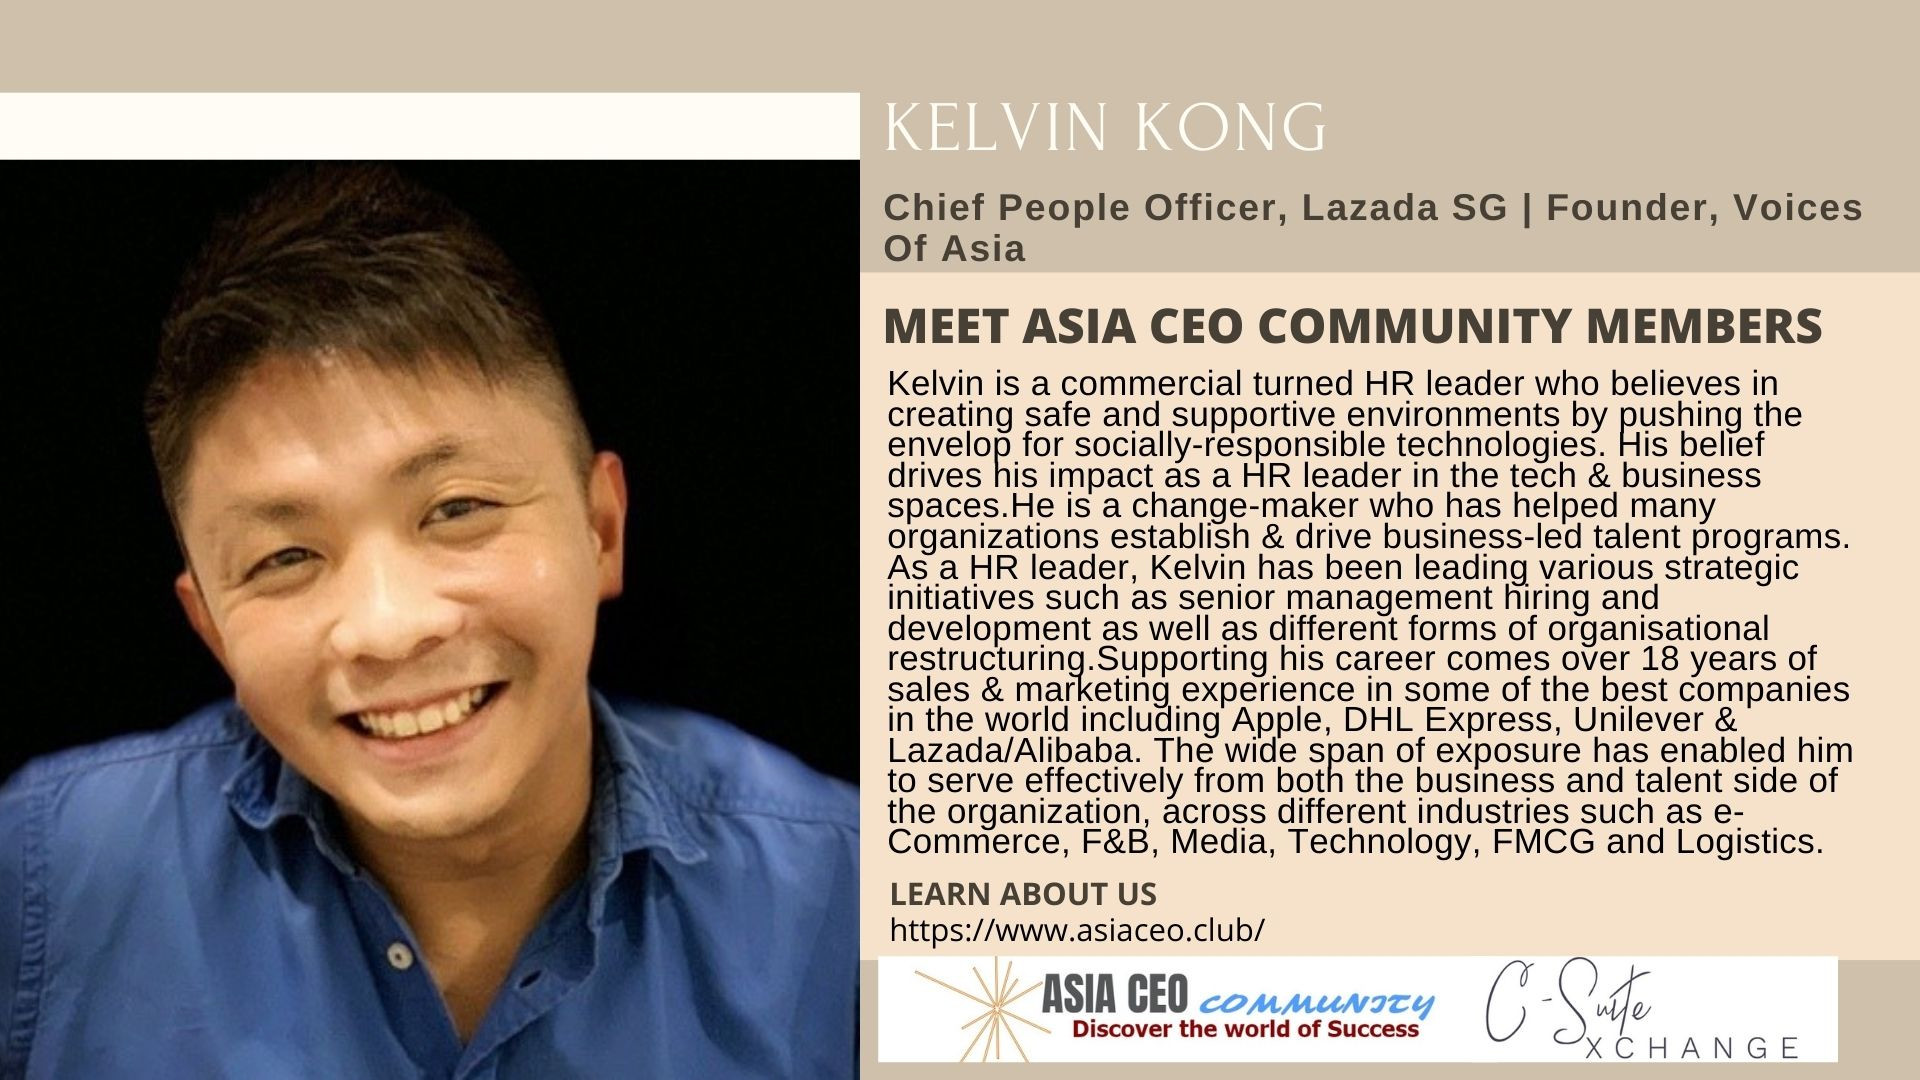 Chief People Officer, Founder, Voices